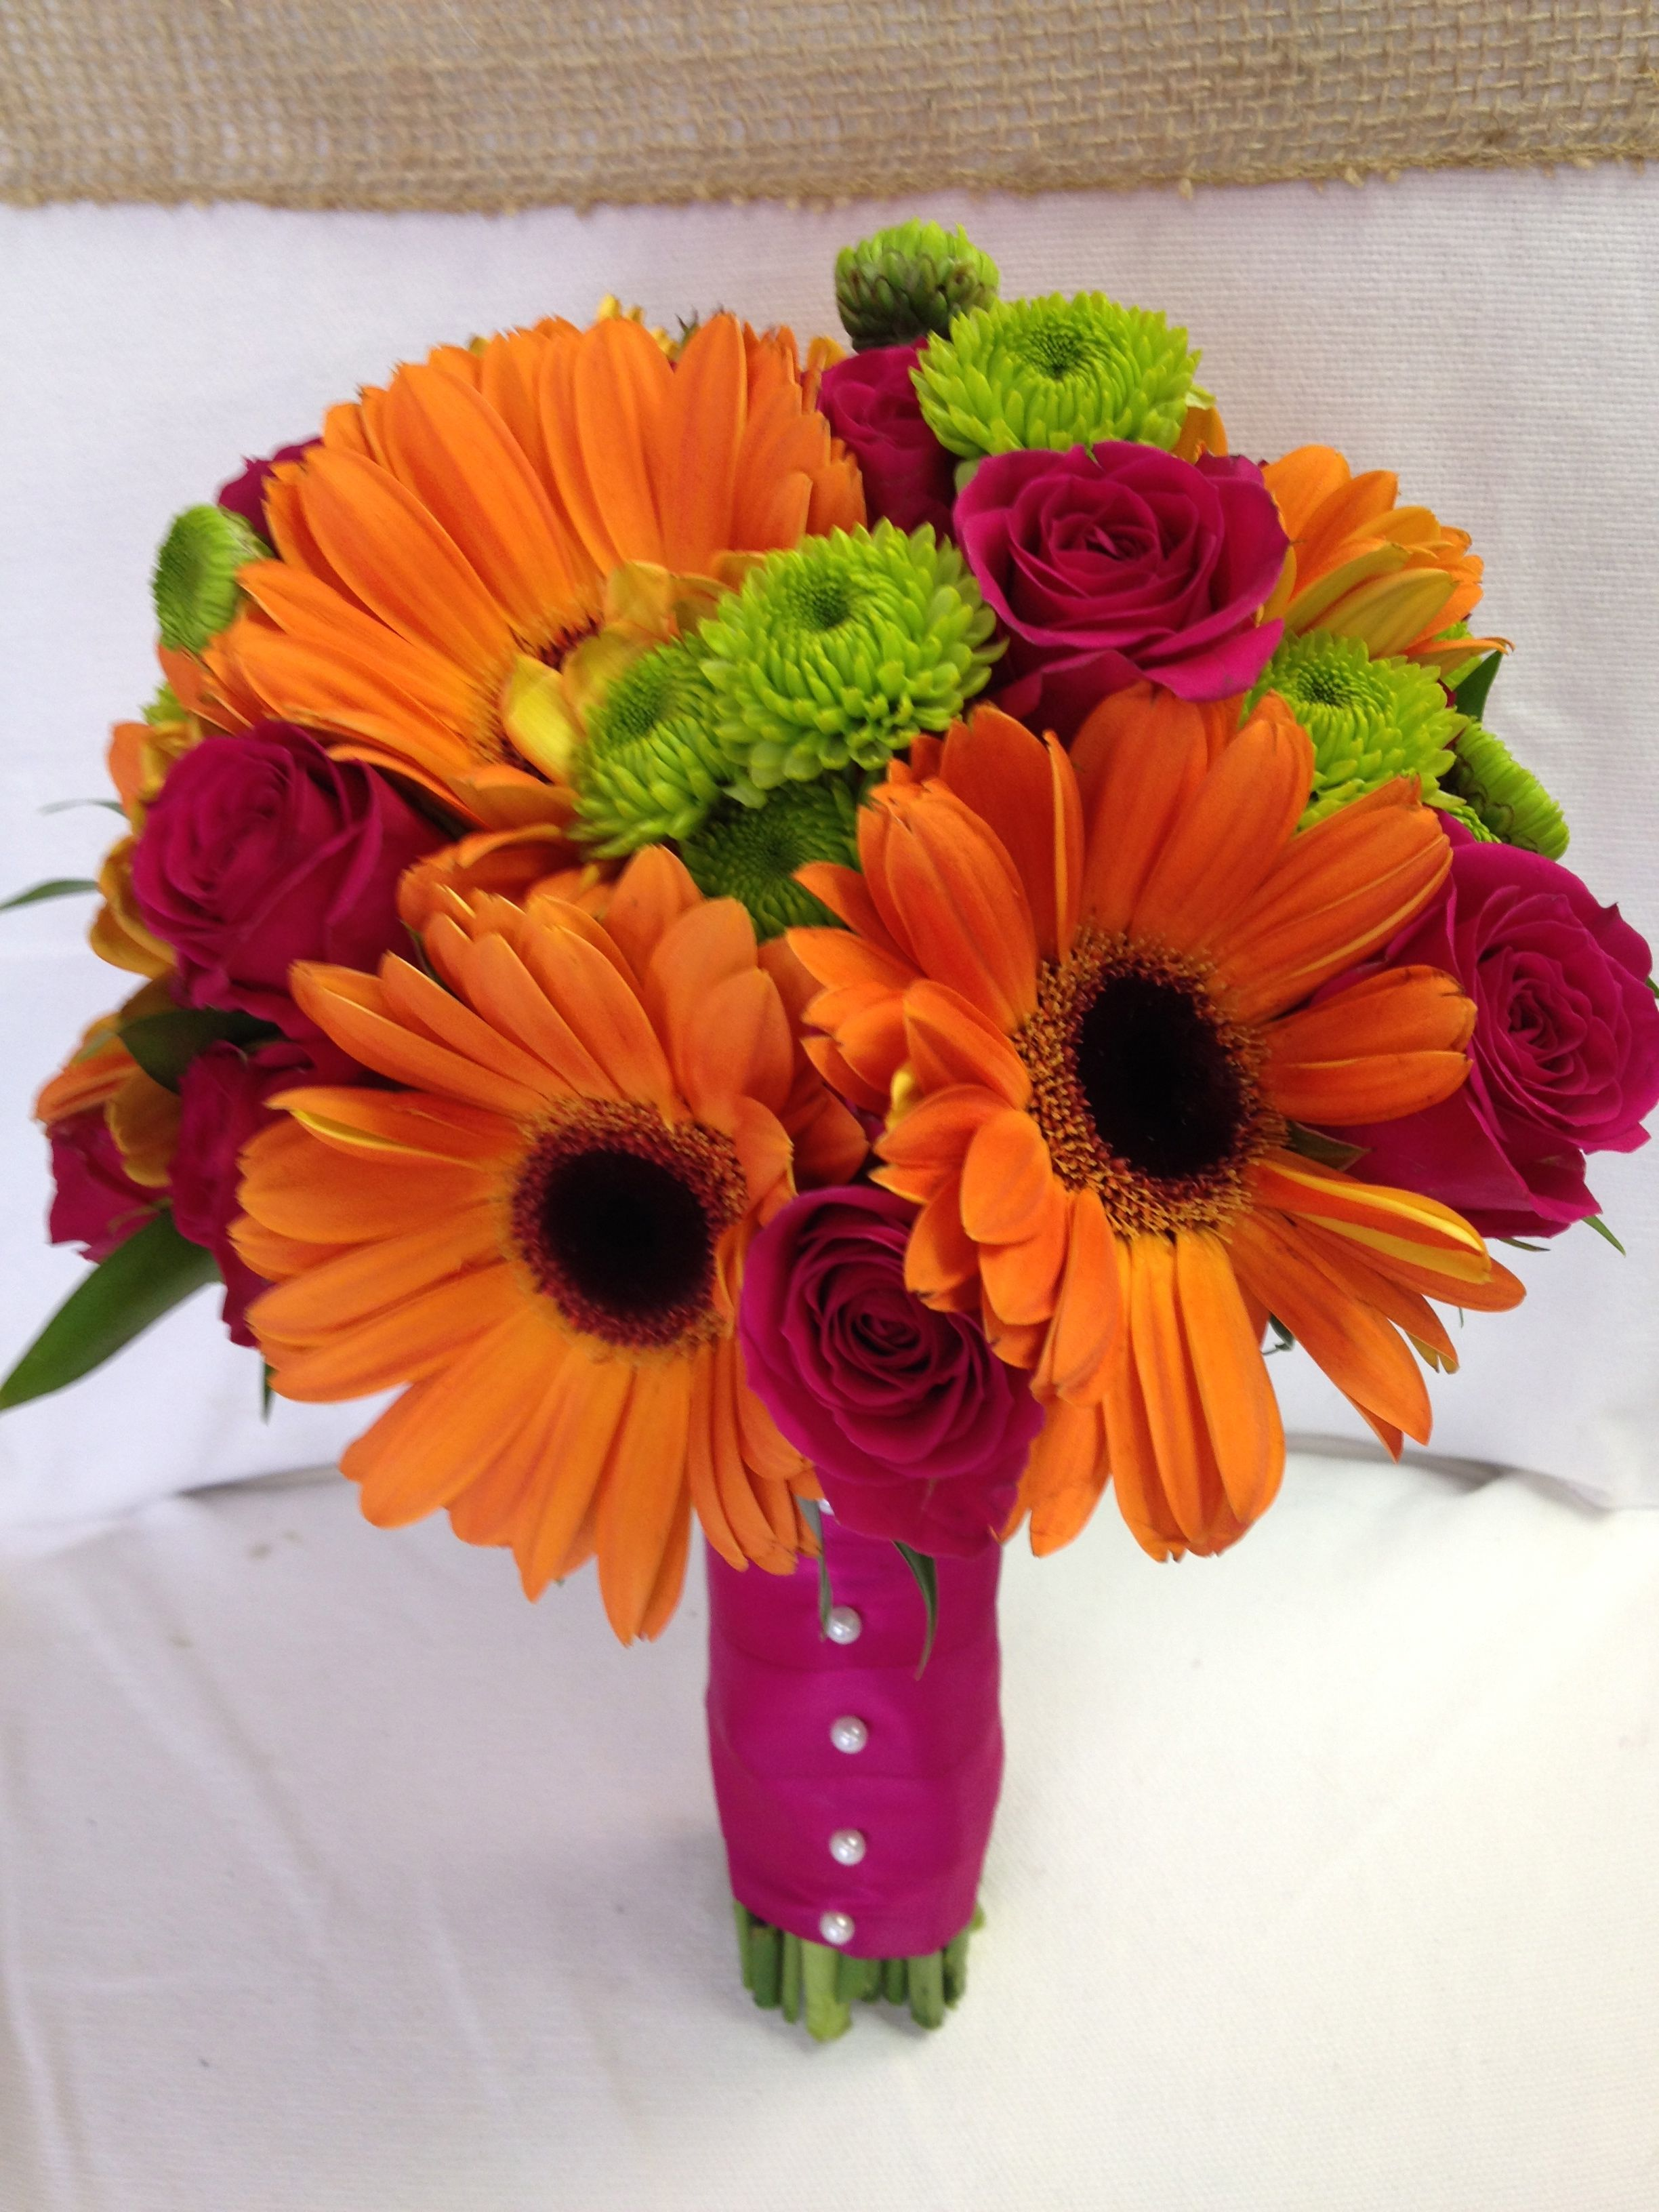 Vibrant orange gerber daisies , green button mums and hot